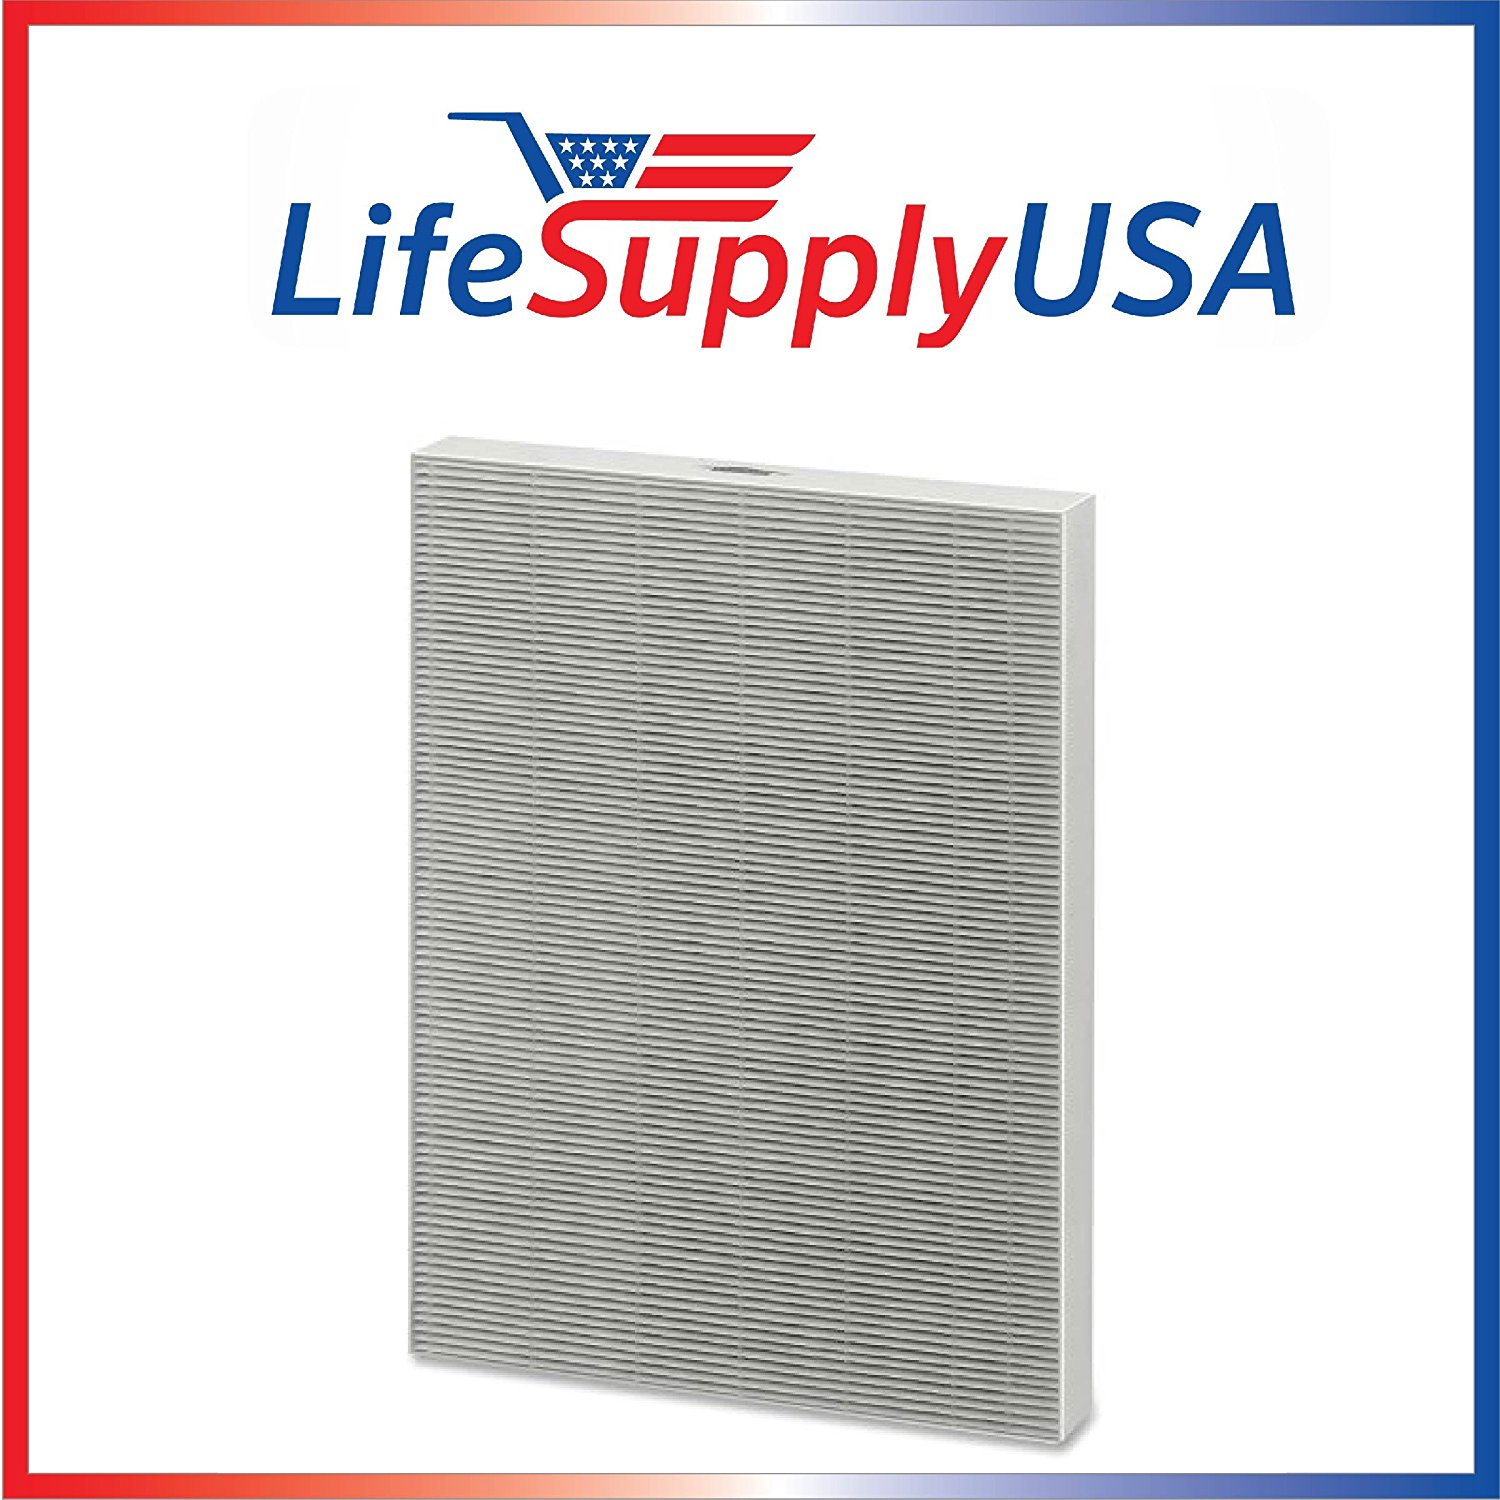 LifeSupplyUSA 1 HEPA Air Purifier Filter 4 Carbon Filters to fit Fellowes AP 300PH Air Purifier Compare HF 300